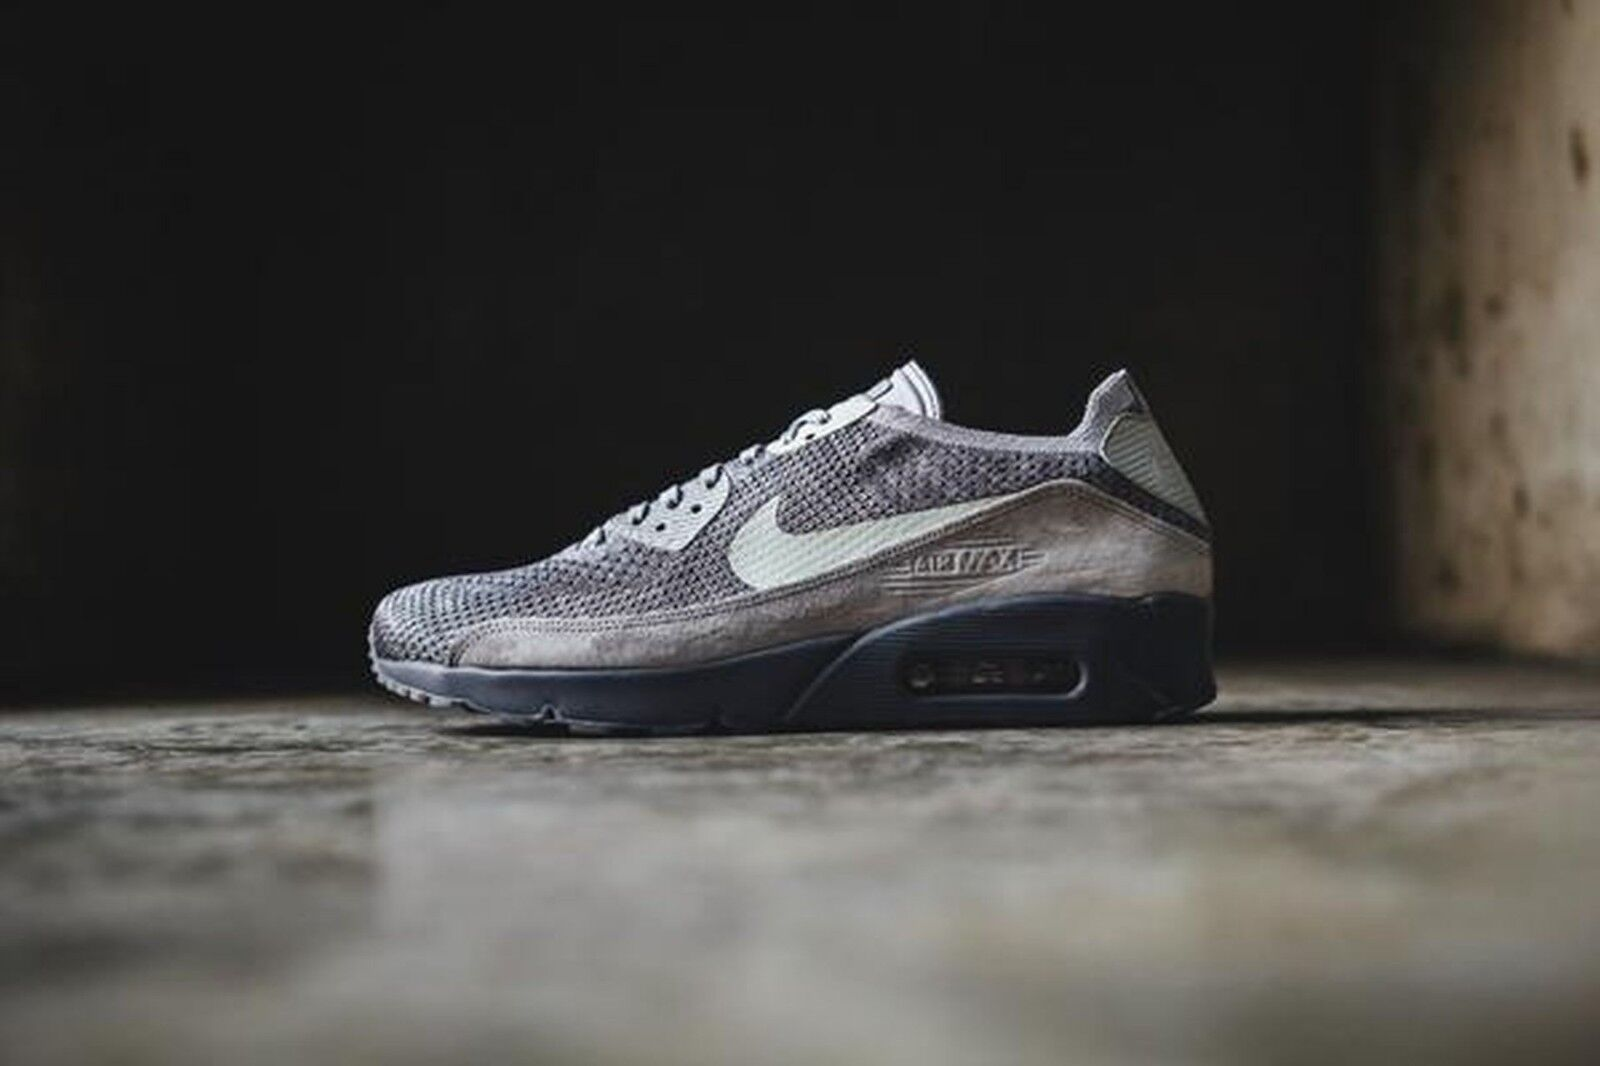 Nike Air Max 90 Ultra 2.0 Flyknit Atmosphere Gris / LightBone 875943 007 Pour Homme 9